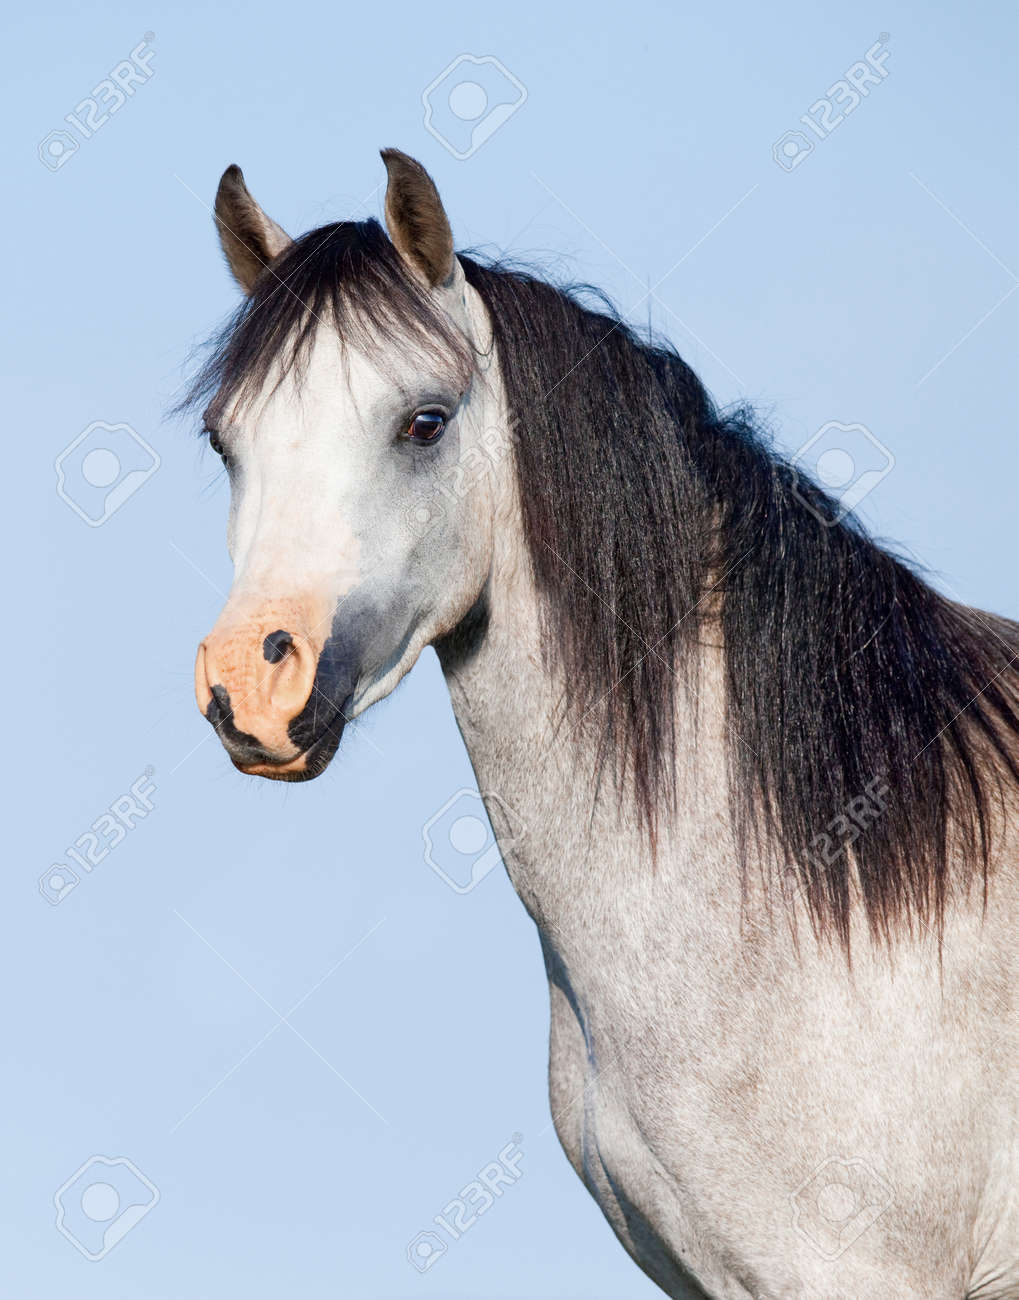 White Horse With Black Mane On Blue Background Stock Photo Picture And Royalty Free Image Image 71230095